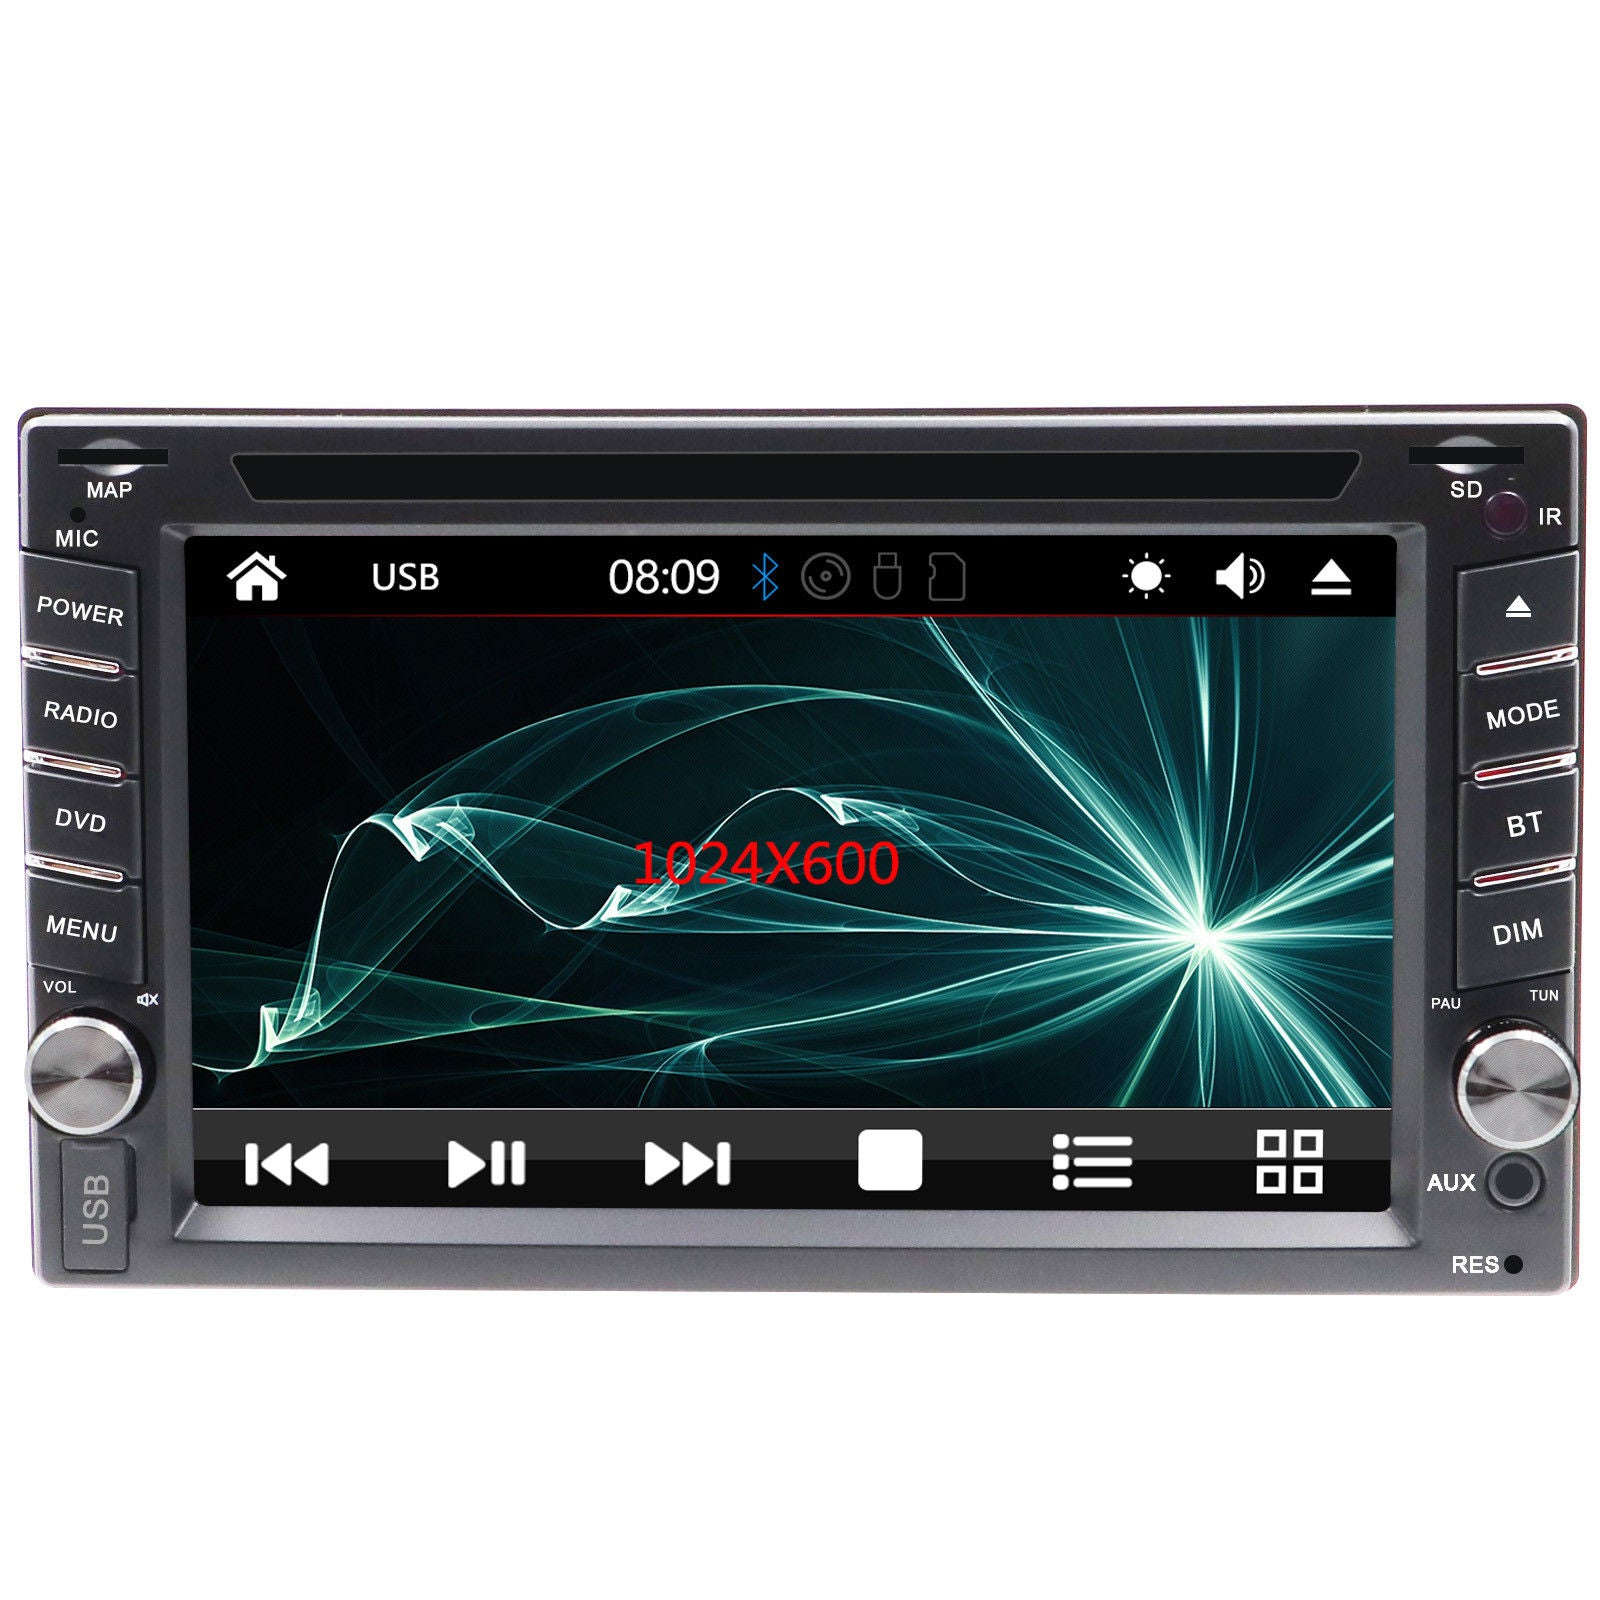 Android Upgrade for 2009 2010 2011 KIA Rio Soul Sorento RIO Touch Screen on toyota gps, samsung gps, polaris gps, caterpillar gps, bmw gps,